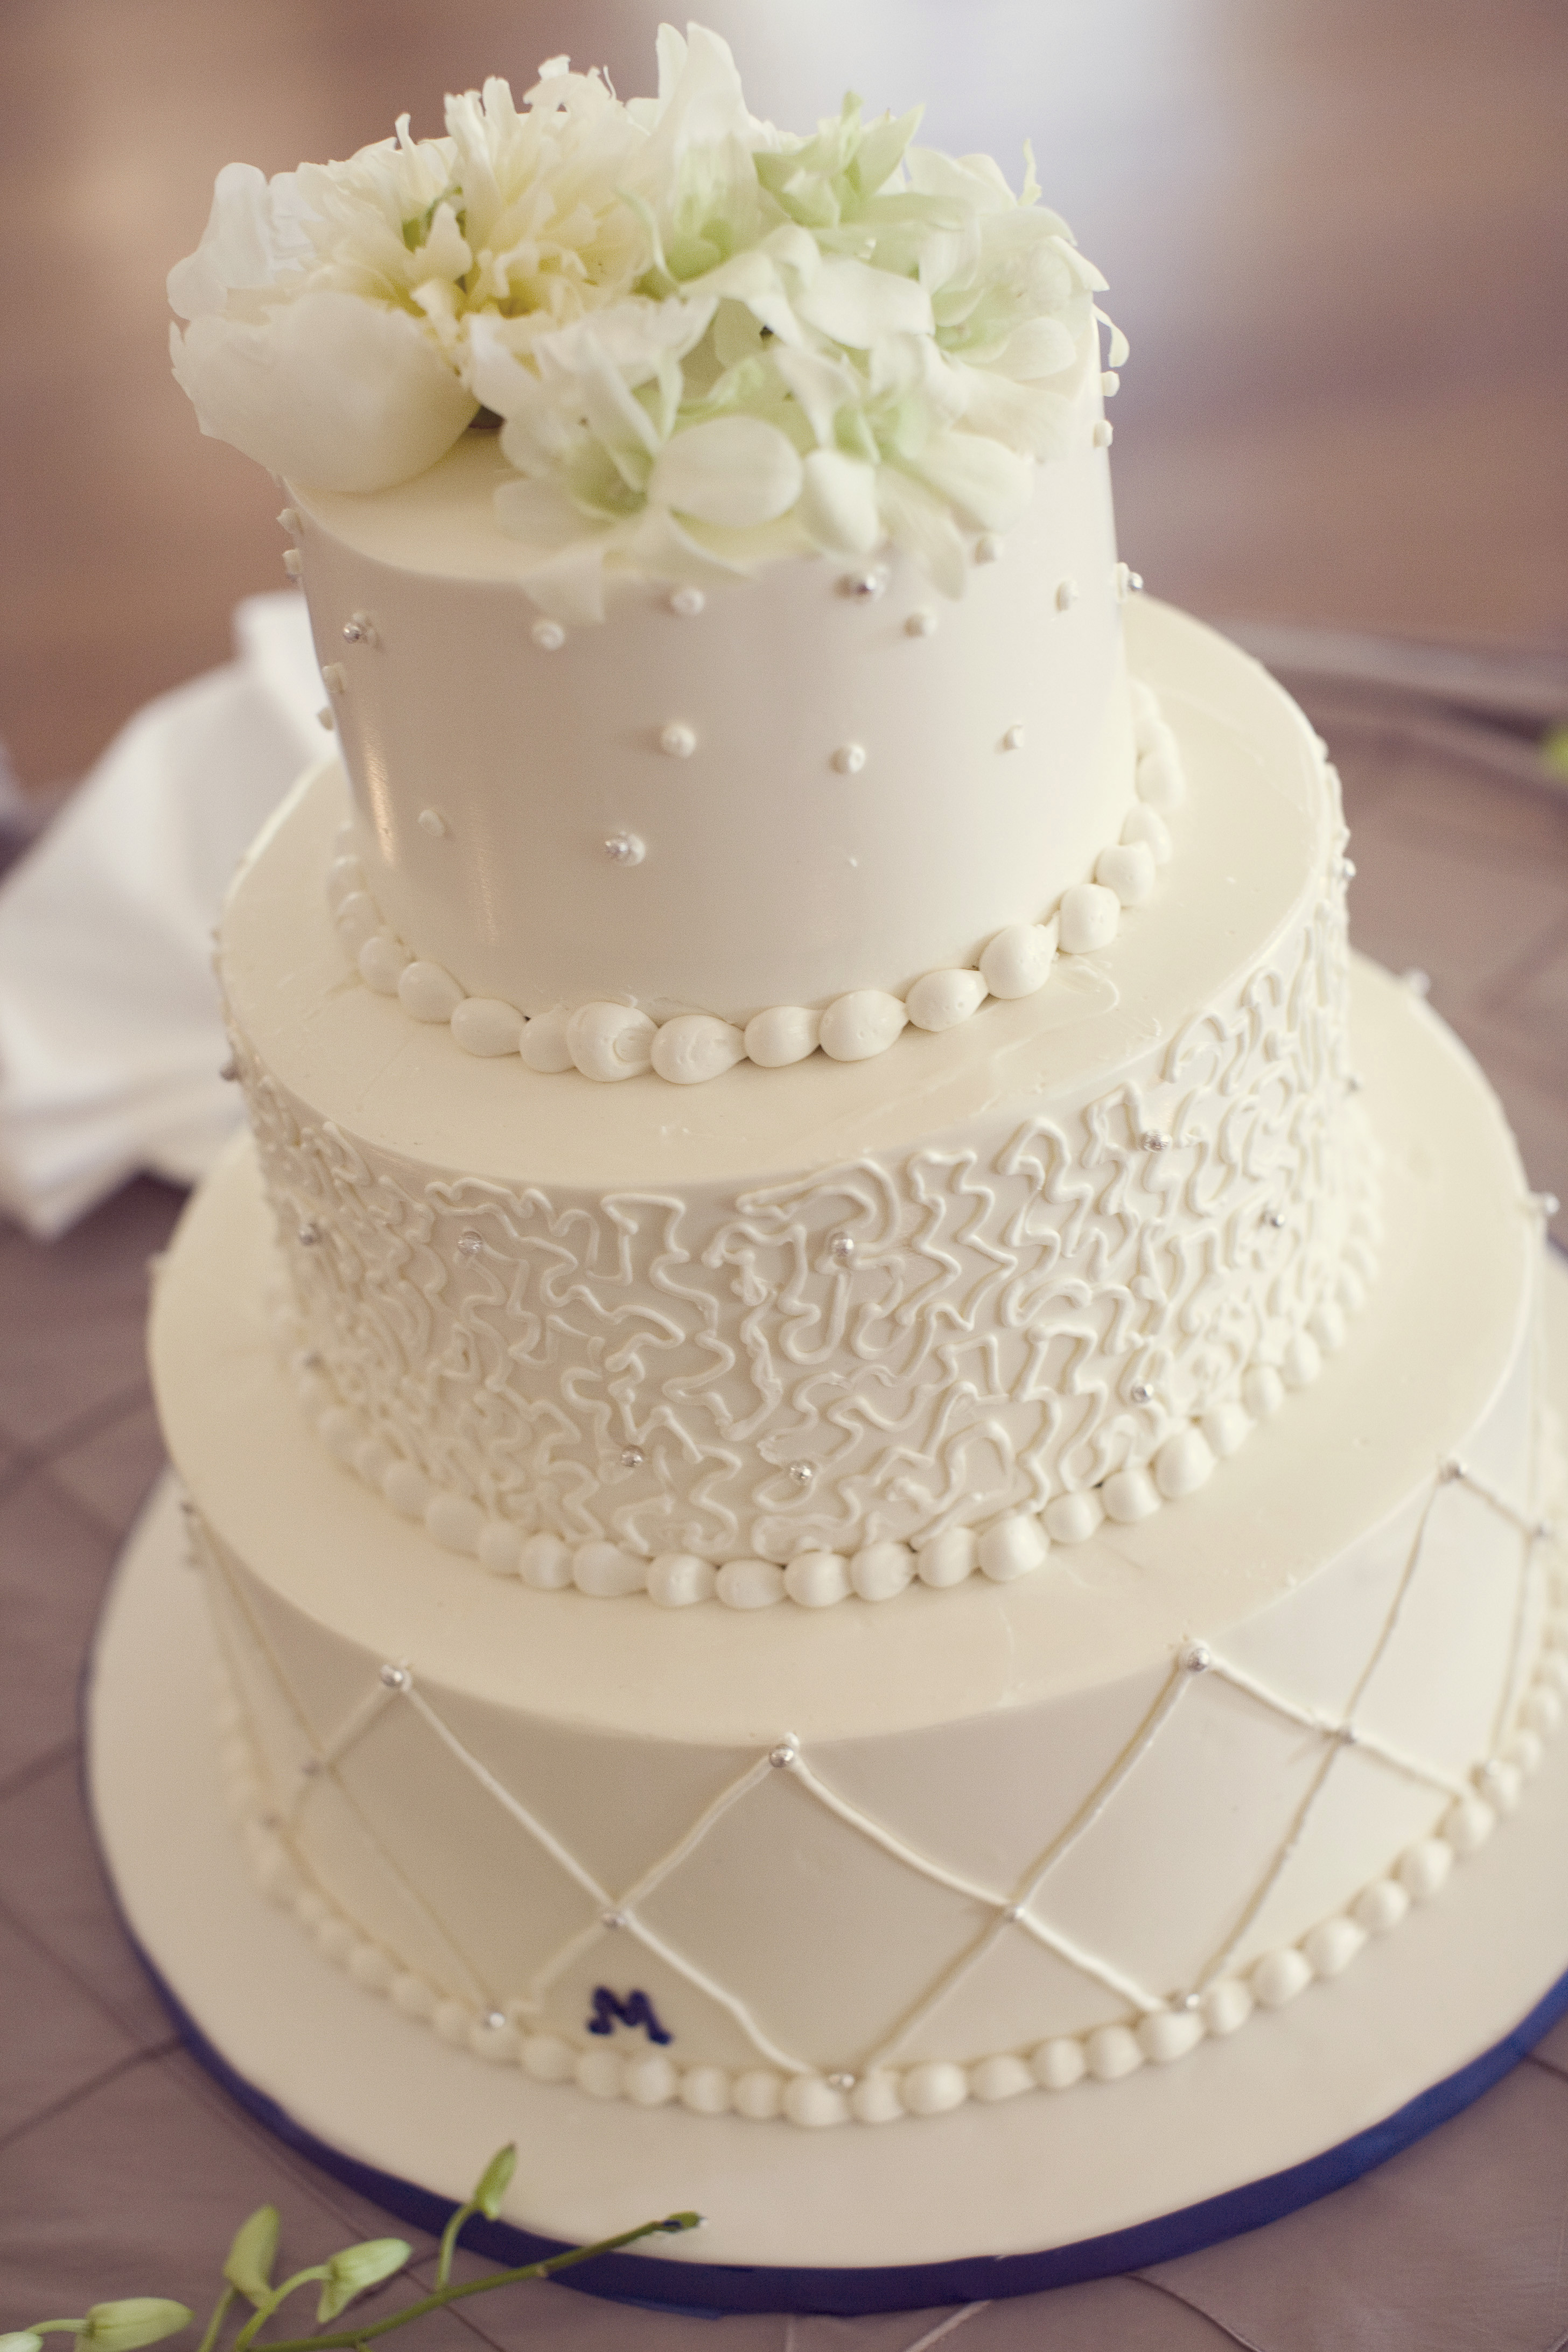 Best Icing For Wedding Cakes  Wedding Cake Frosting Recipe — Dishmaps